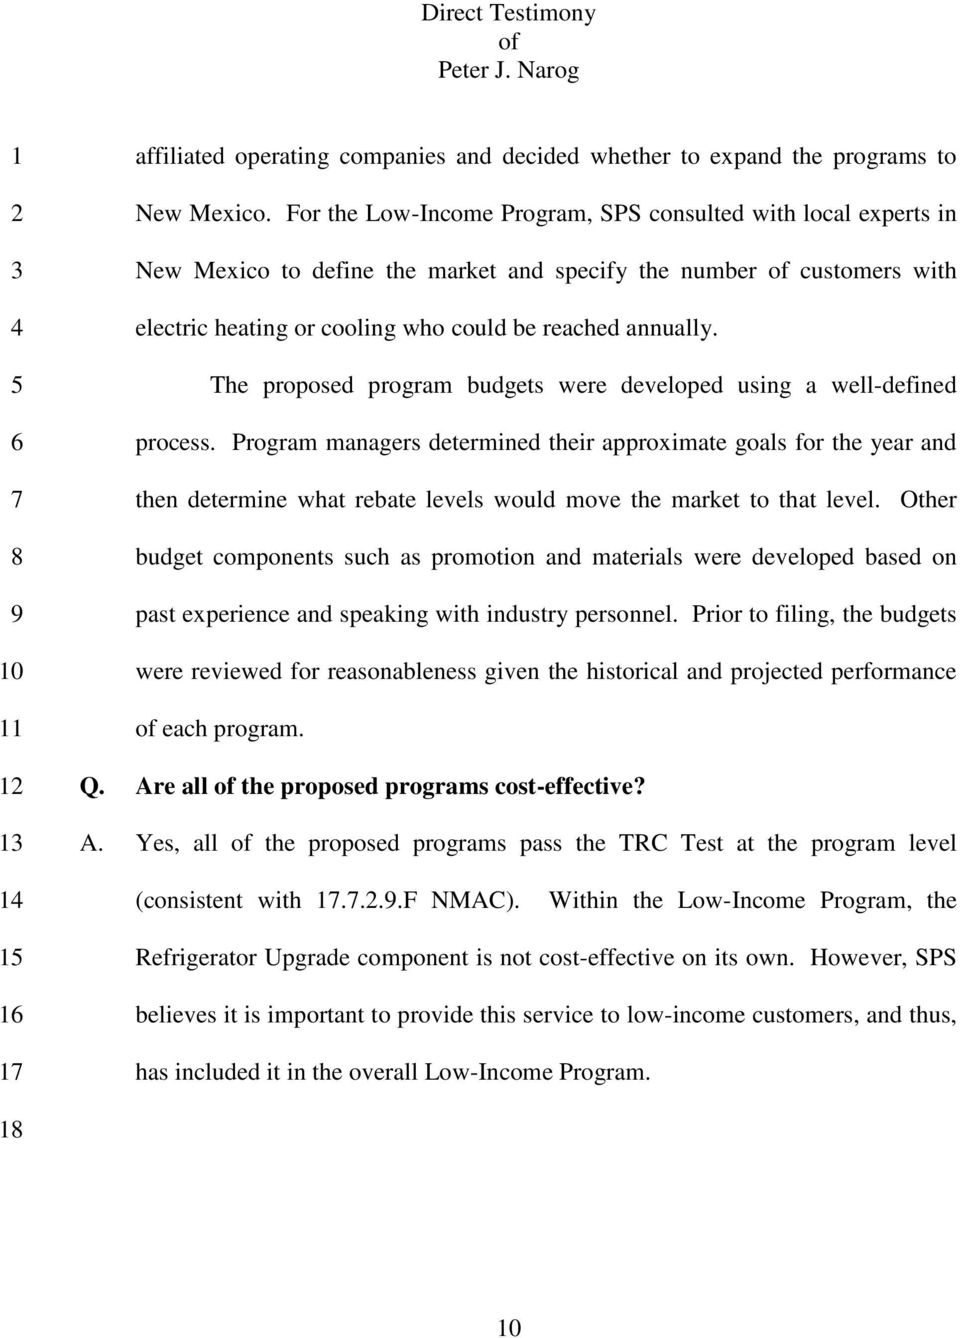 The proposed program budgets were developed using a well-defined process.